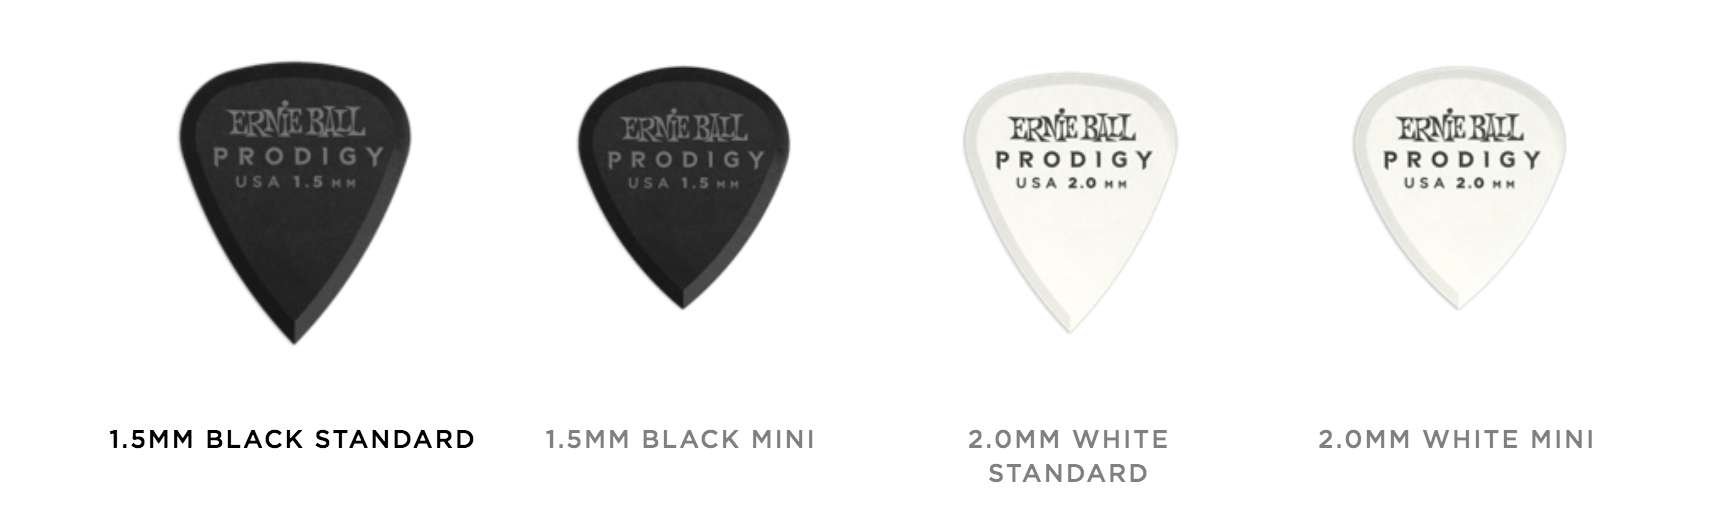 Brand New 2018 Ernie Ball Accessories! - Cables & Picks!